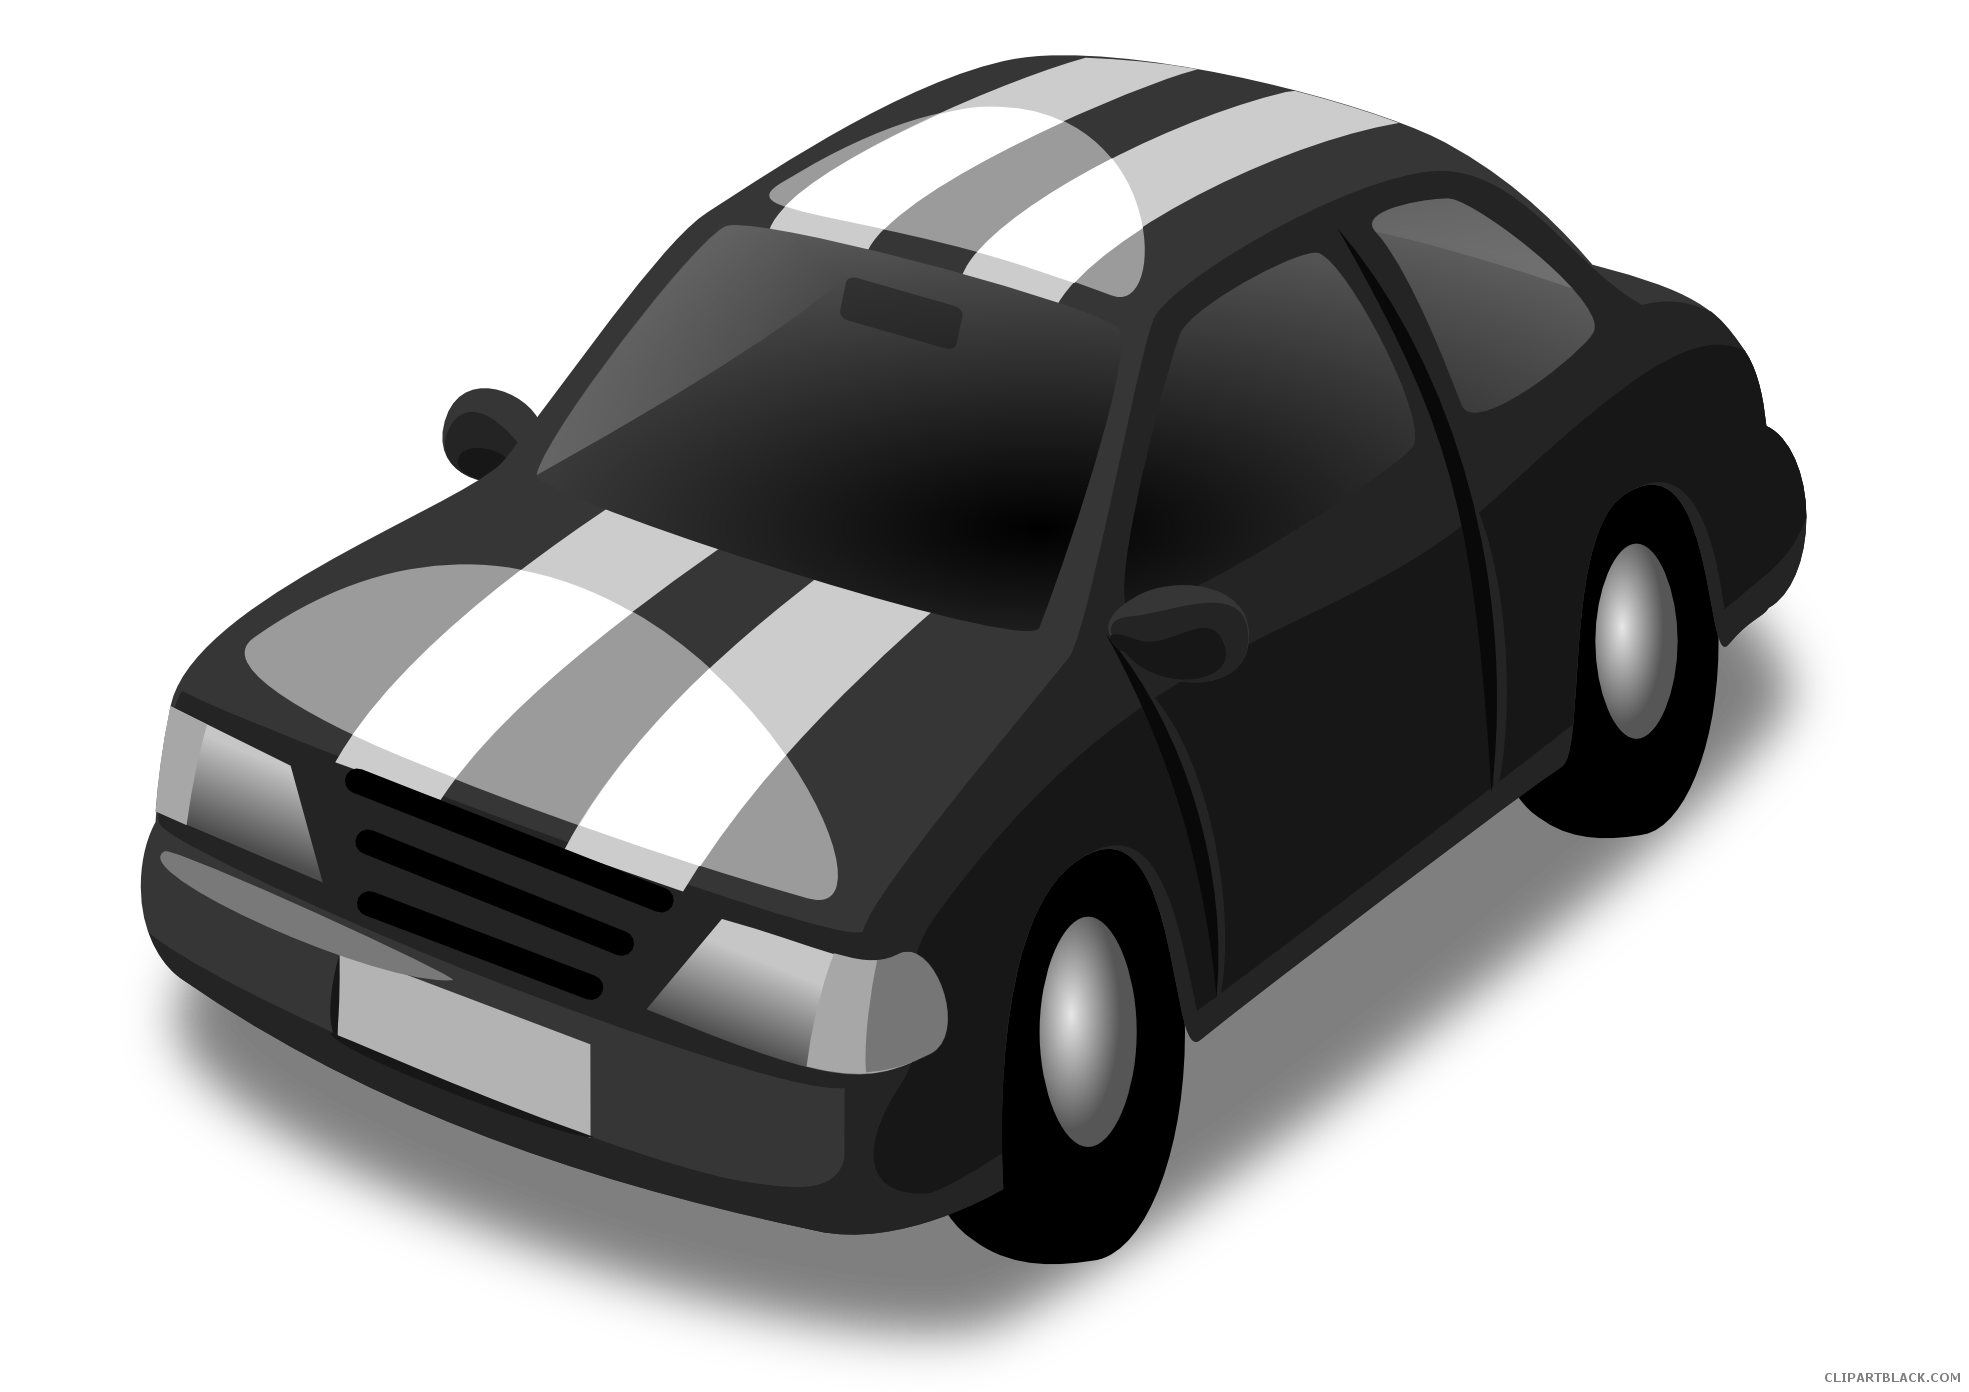 Silver car clipart png black and white library Silver Car Clipart - ClipartBlack.com png black and white library